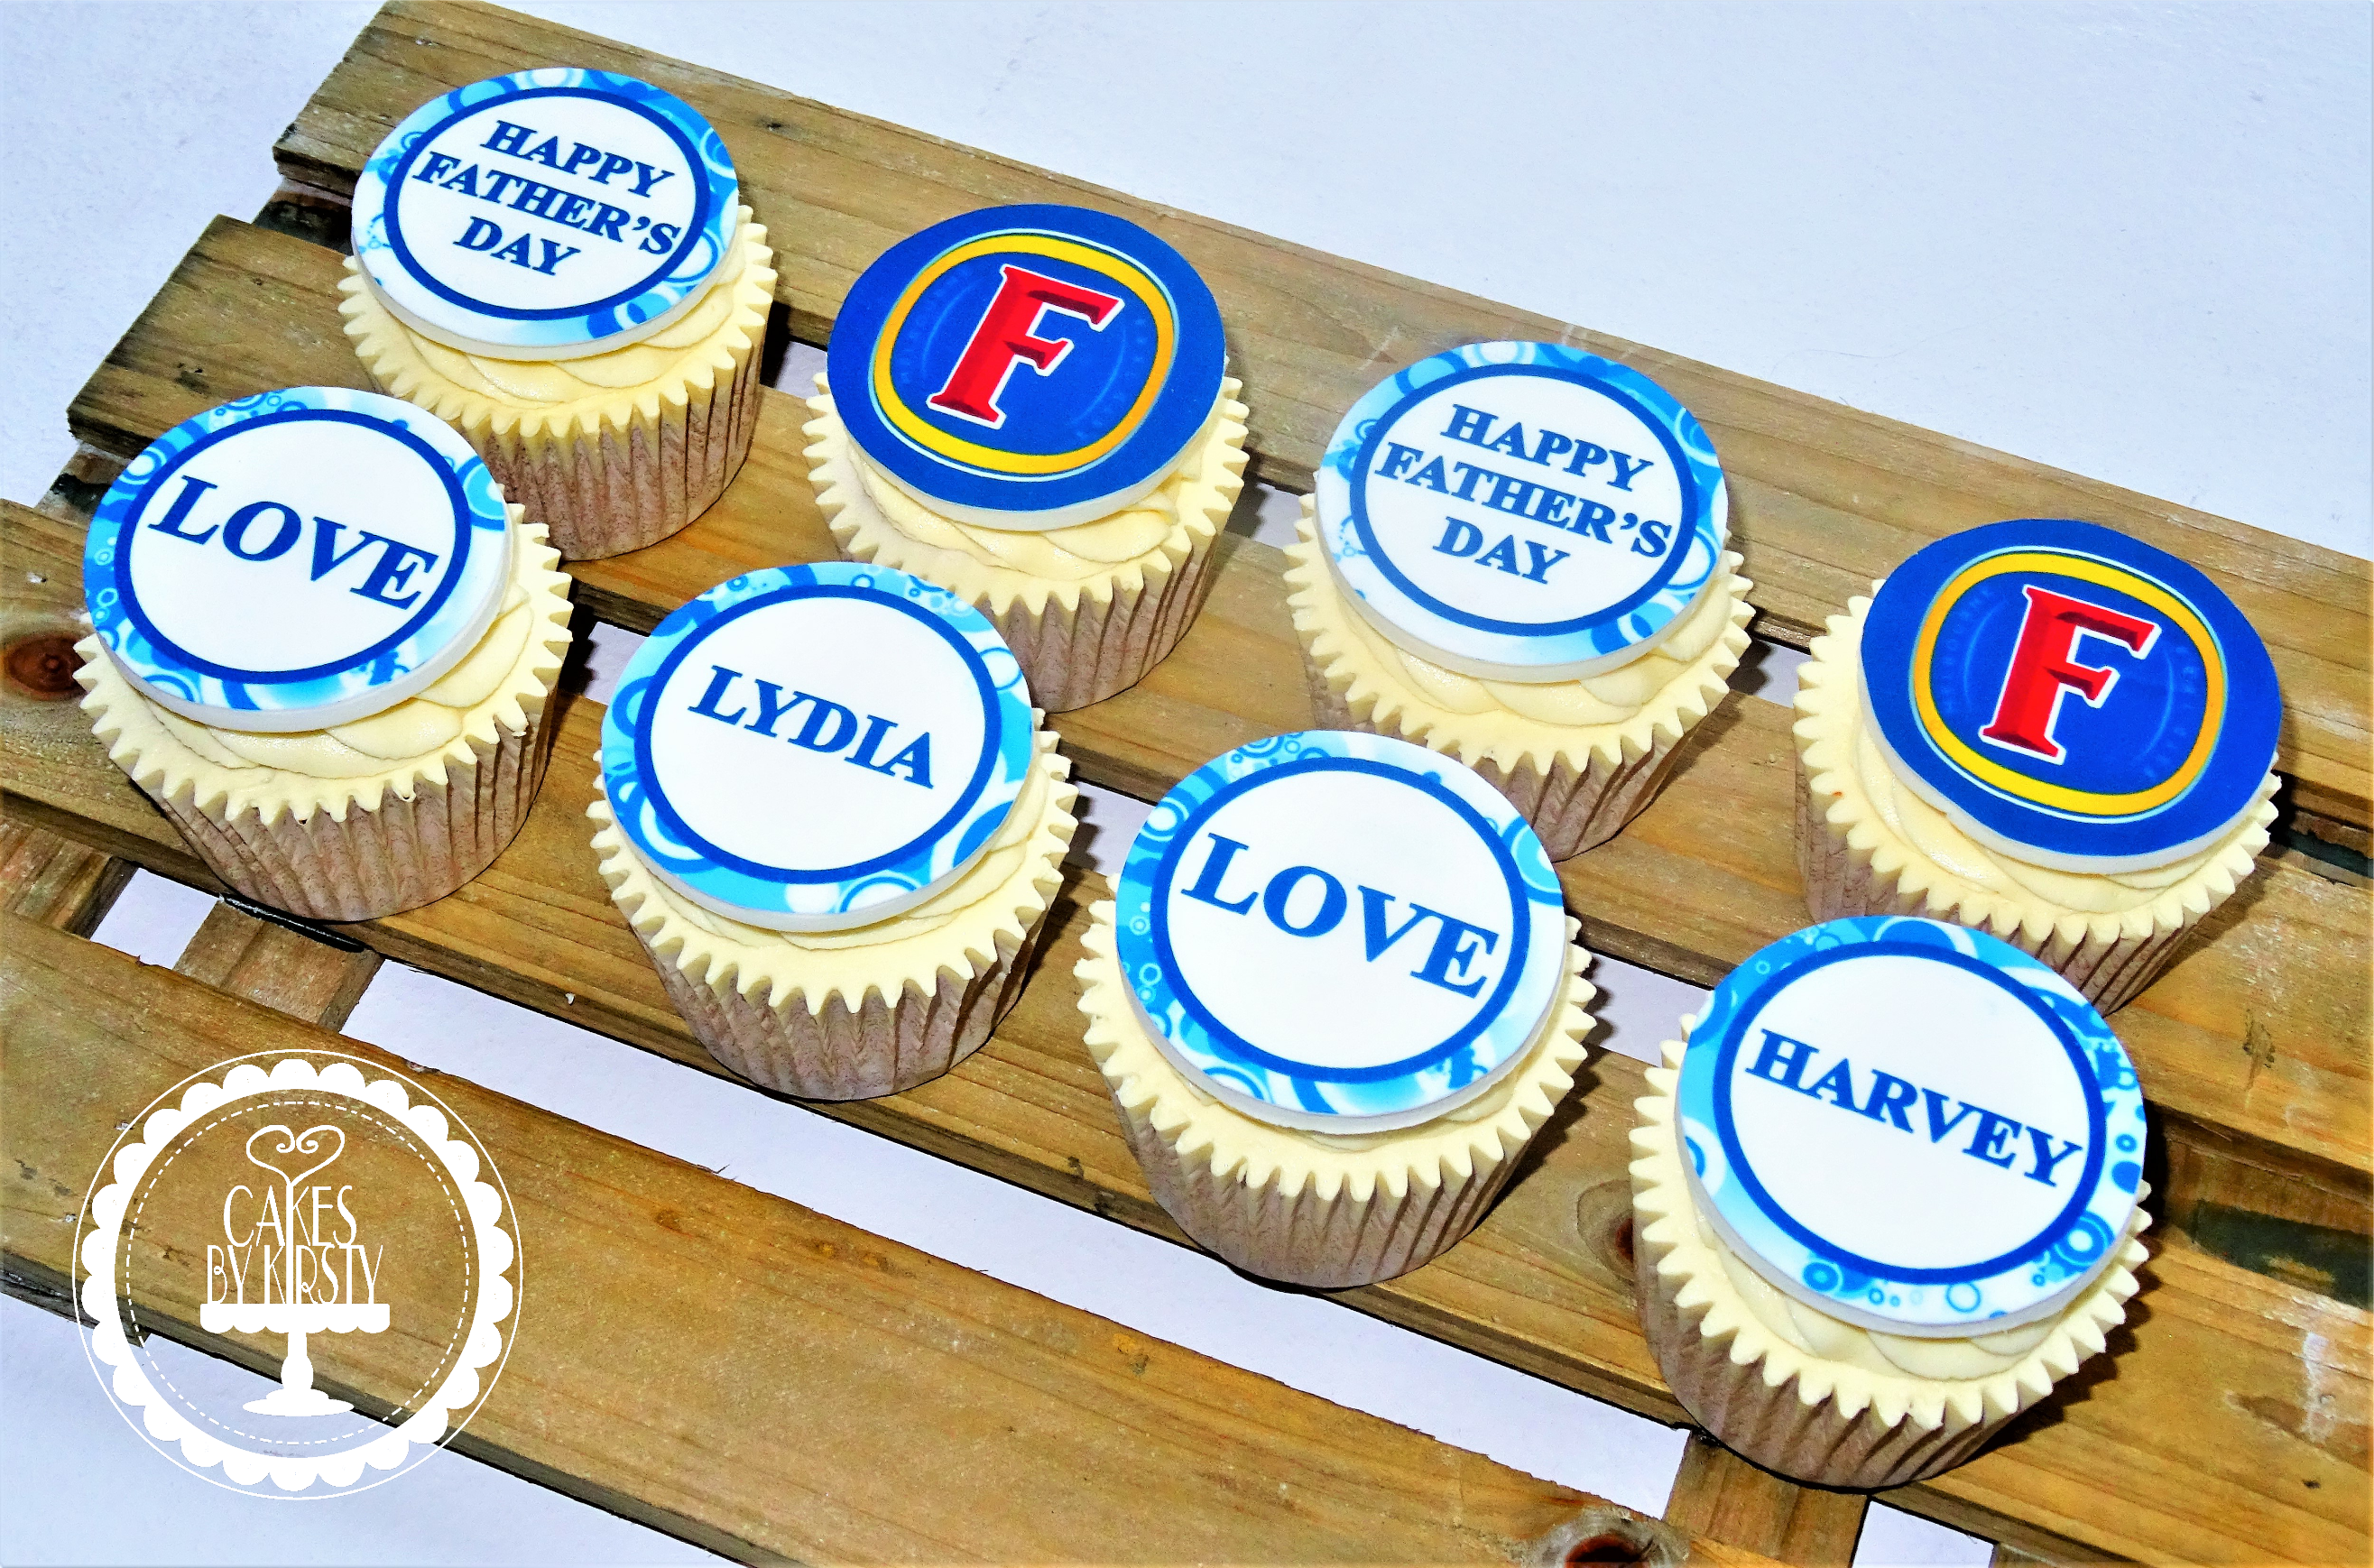 Fosters Cupcakes